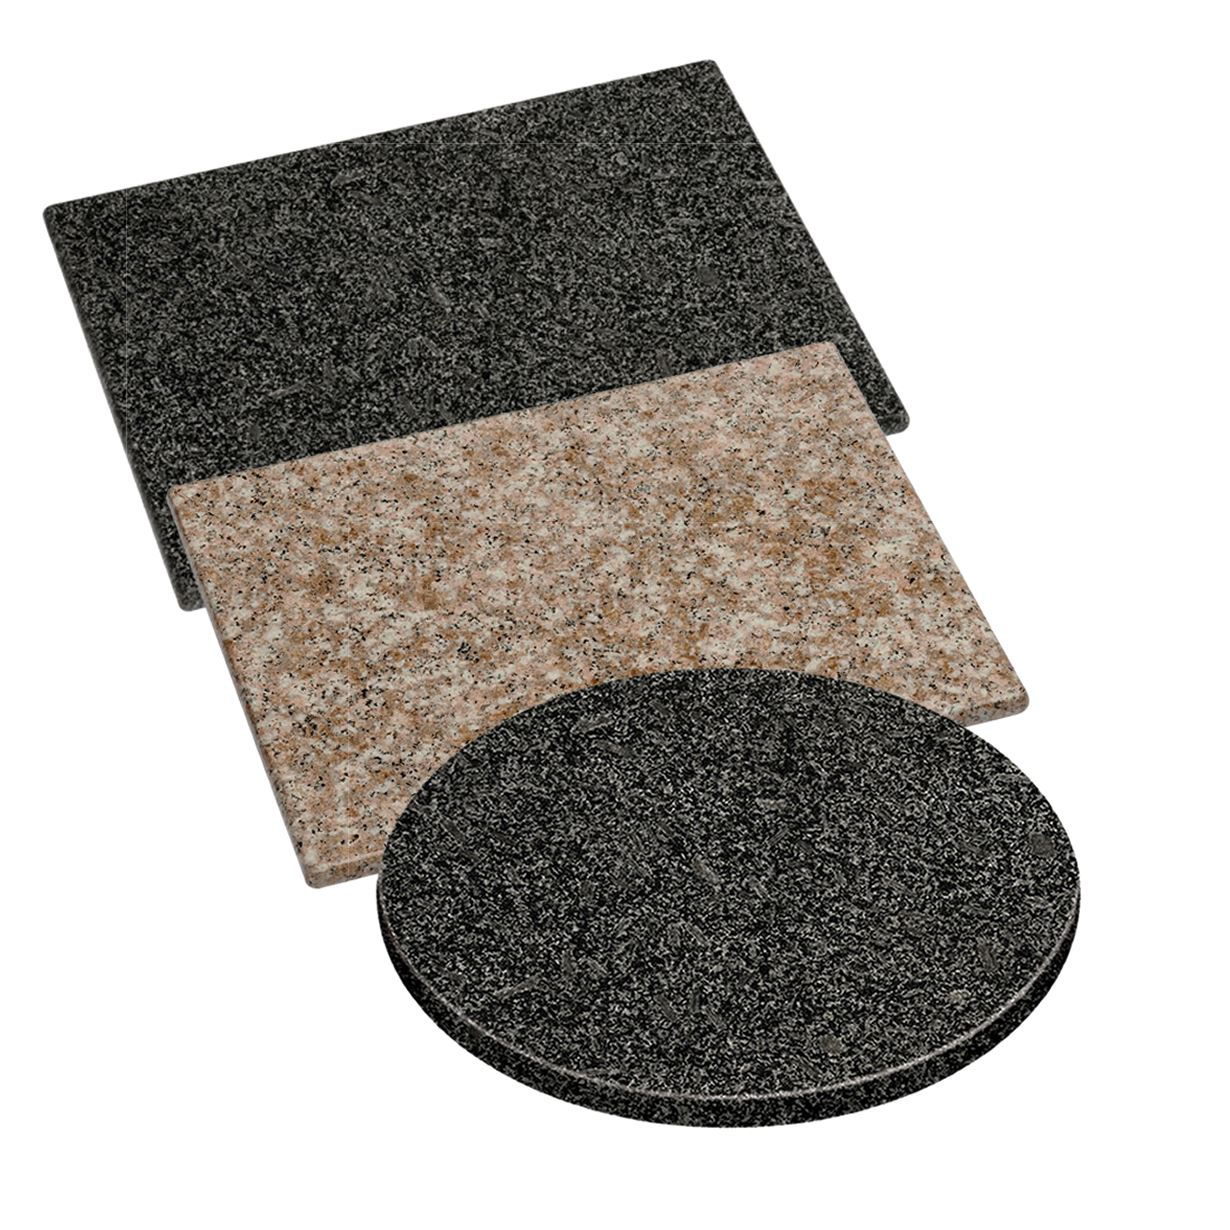 Tan Amp Black Speckled Design Granite Chopping Board Perfect